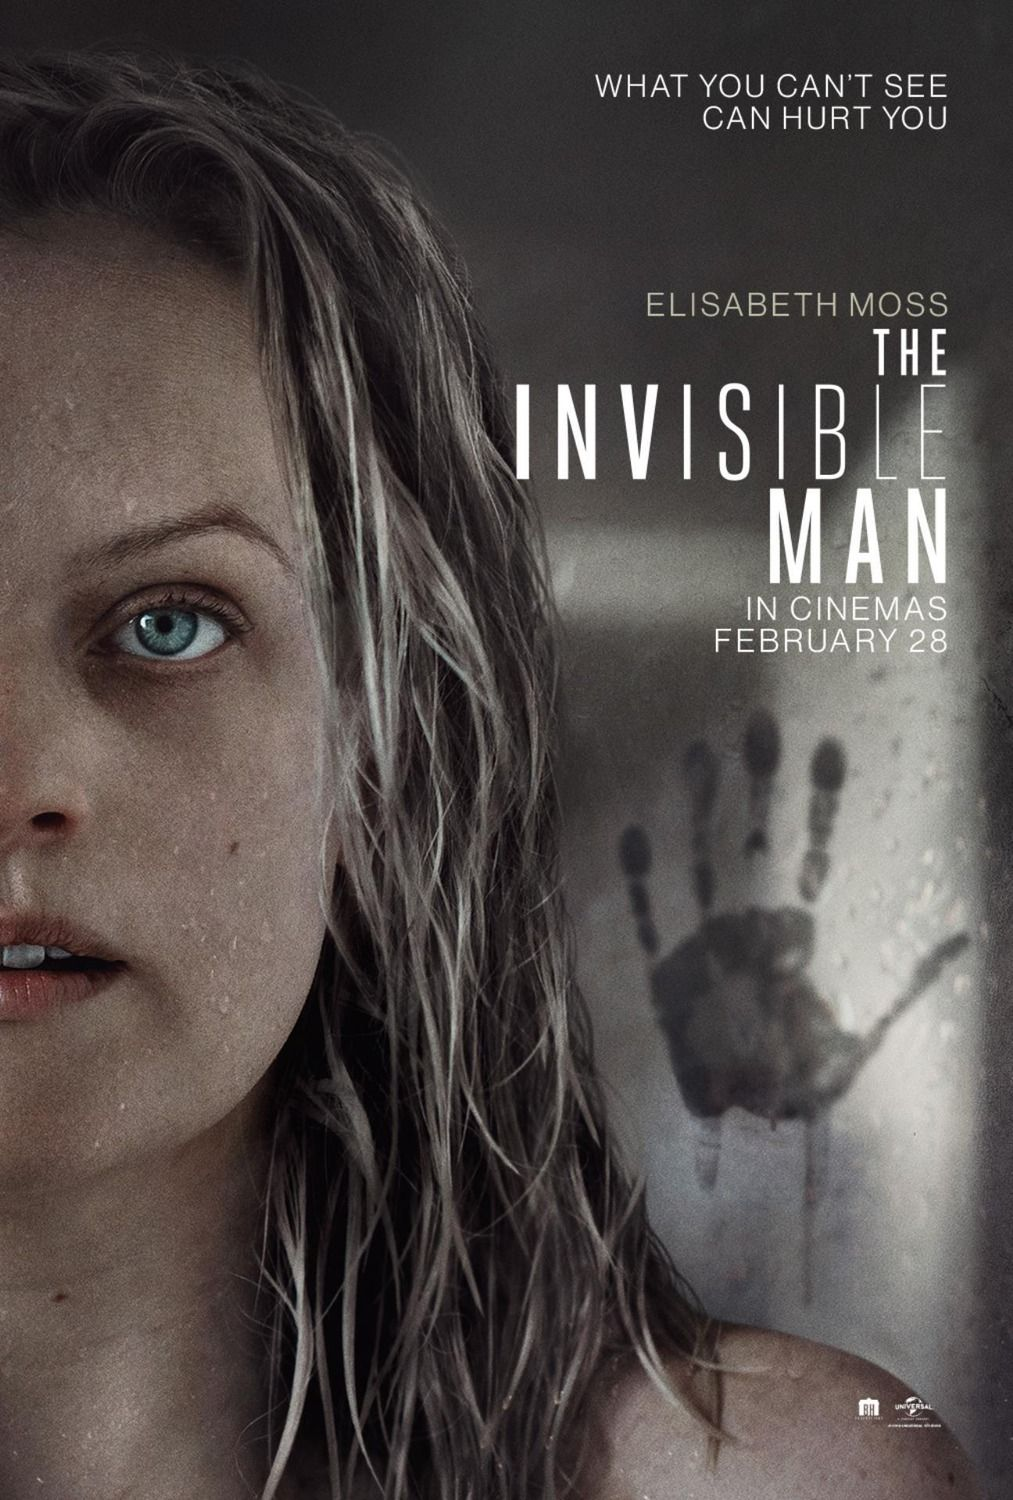 The Invisible Man 2020 Movie Posters In 2020 Invisible Man